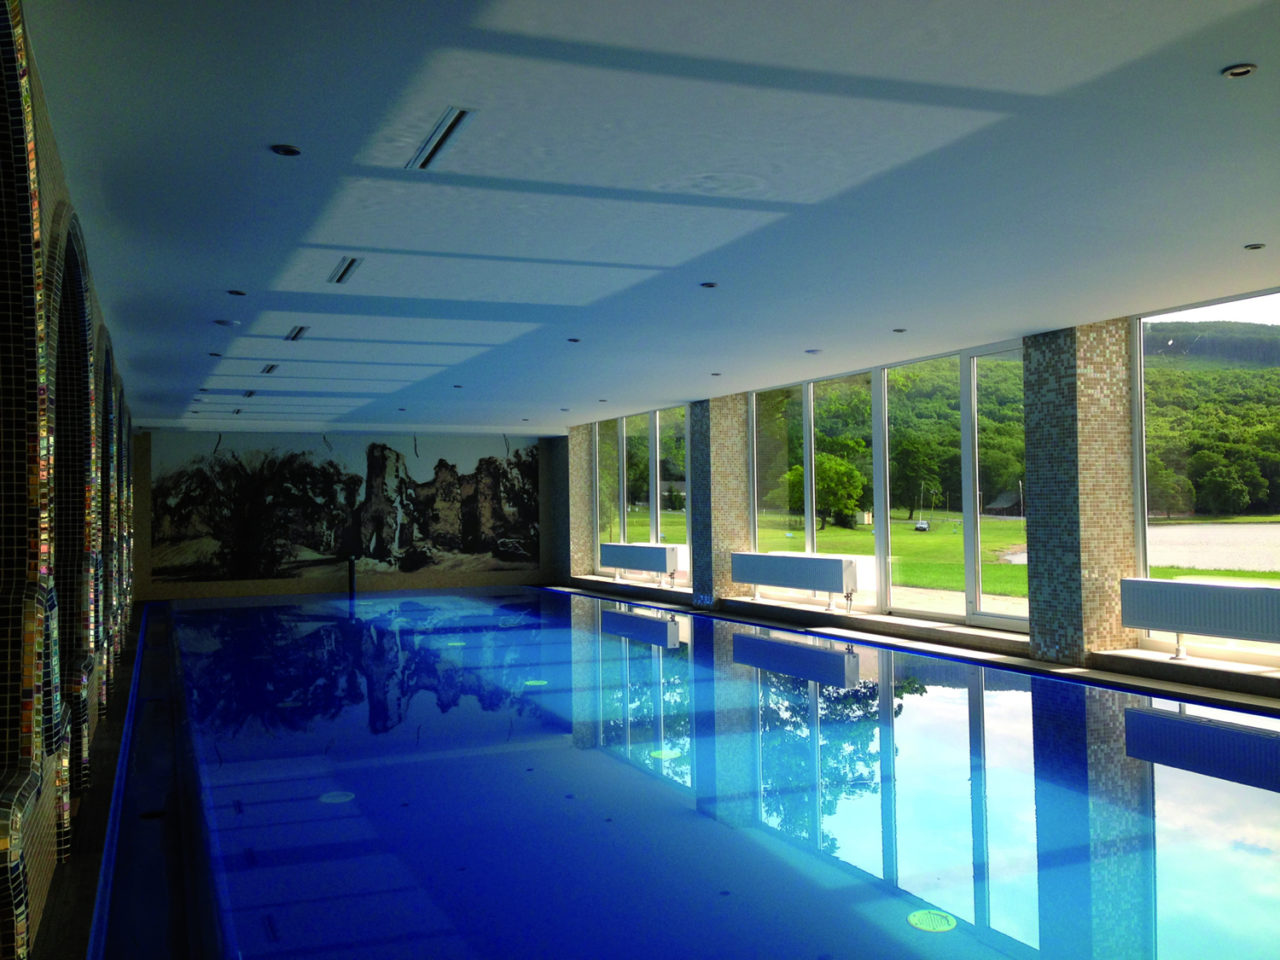 Dehumidification of pools | Blog - Microwell